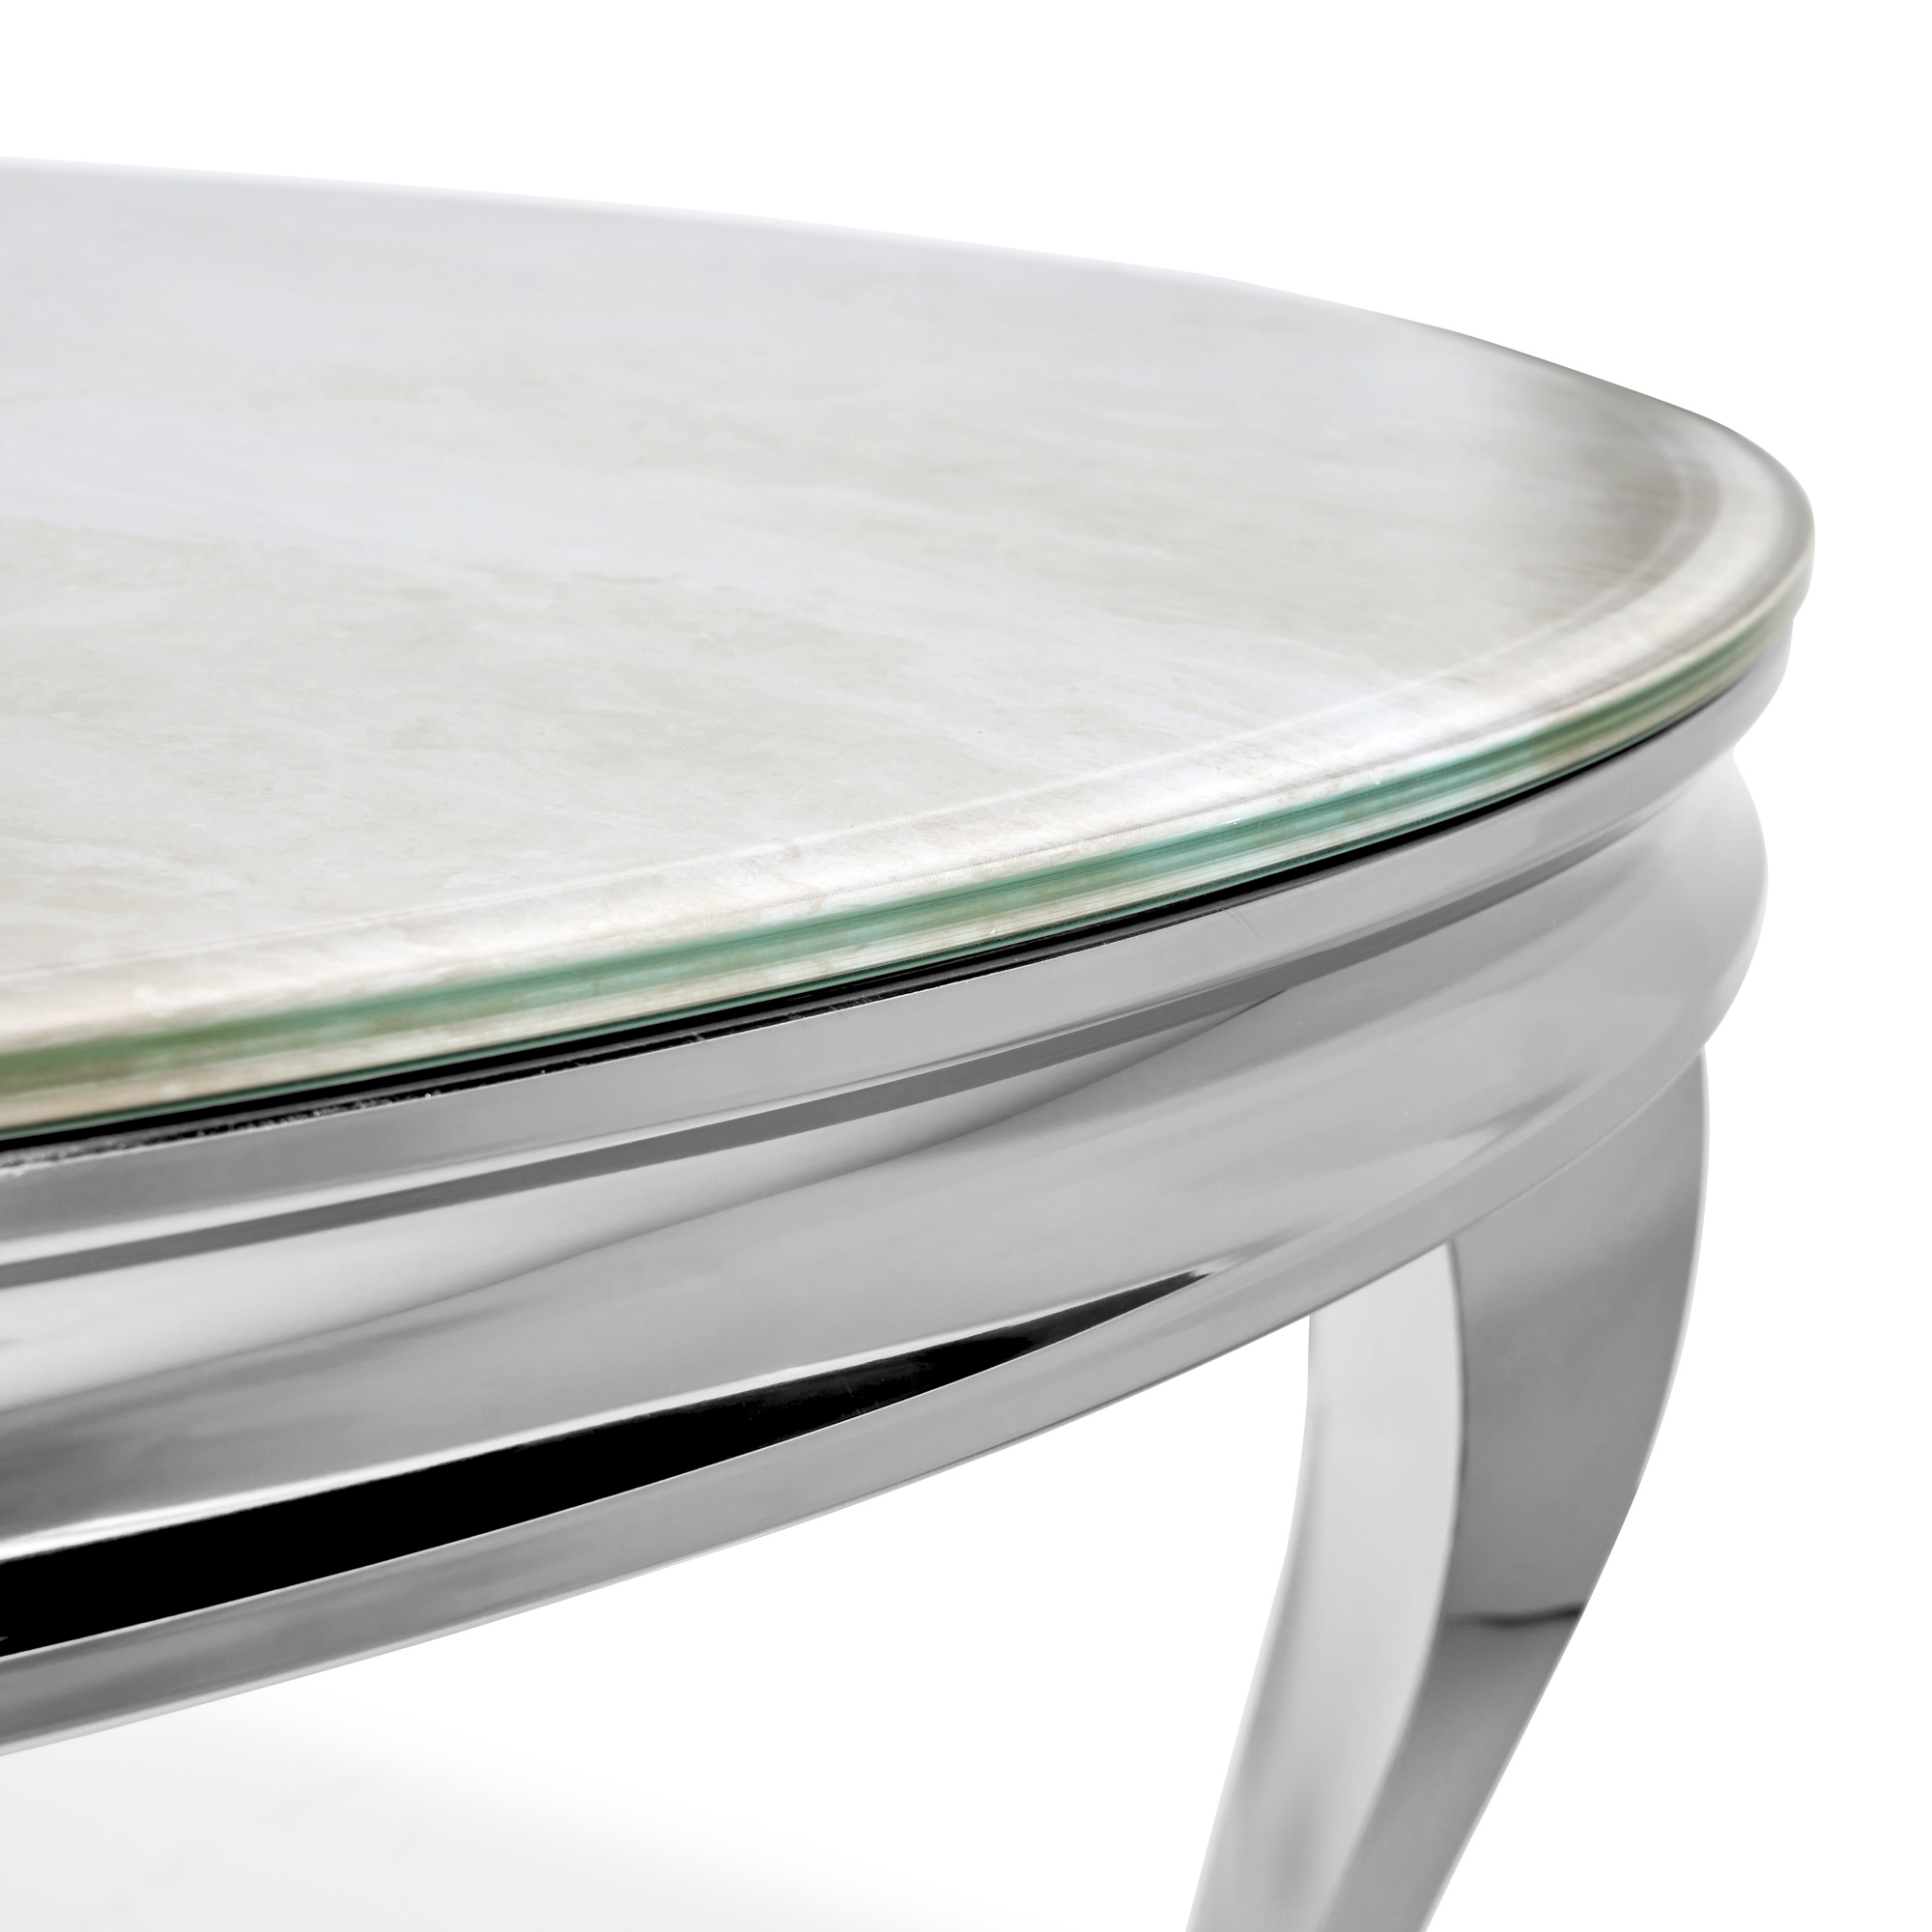 1.3m Louis Polished Circular Stainless Steel Dining Table with Cream Marble Effect Tempered Glass